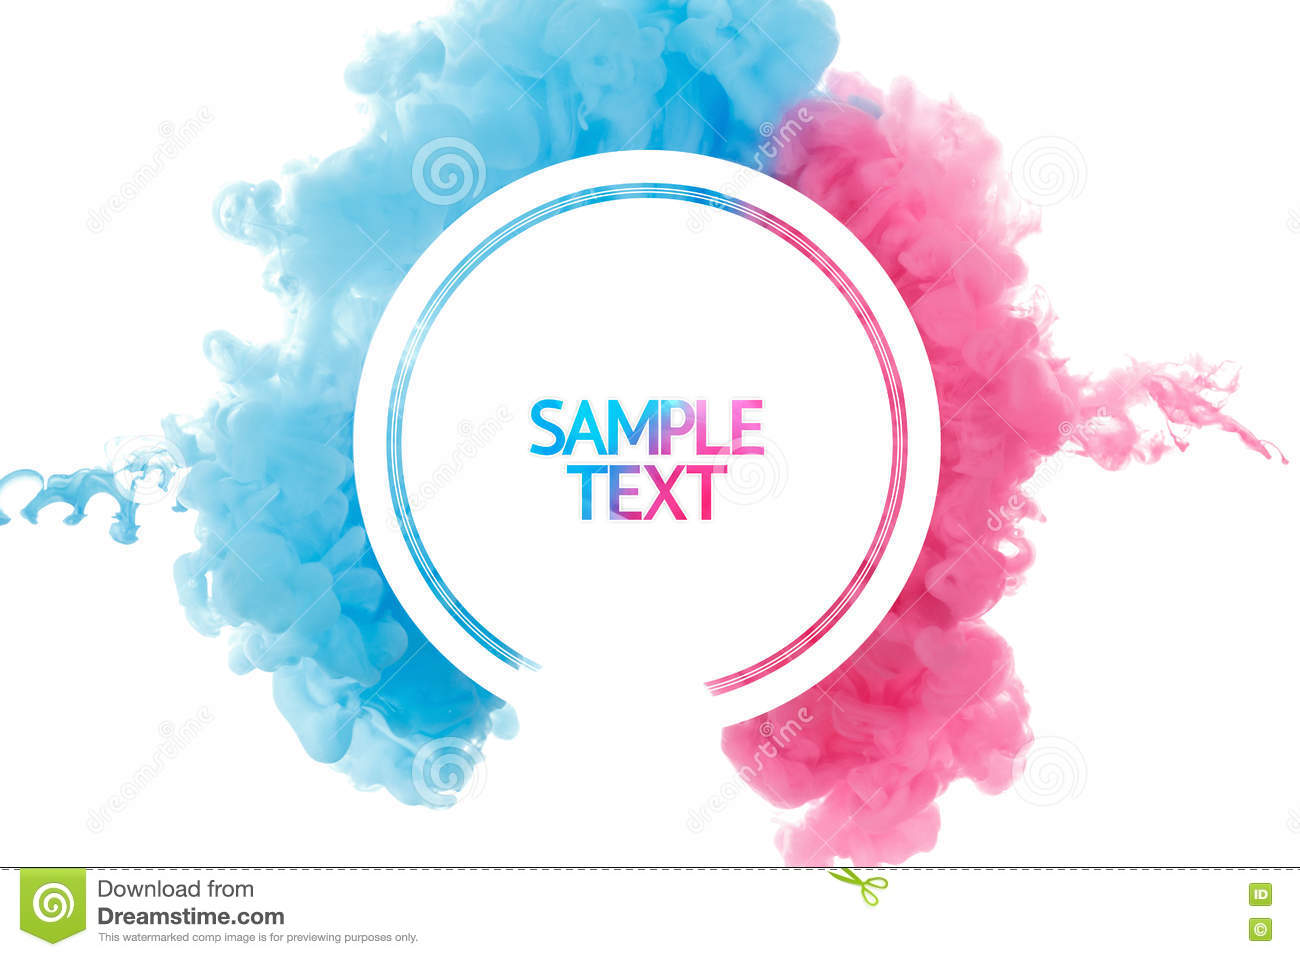 Free illustration watercolor pigment color free image - Royalty Free Illustration